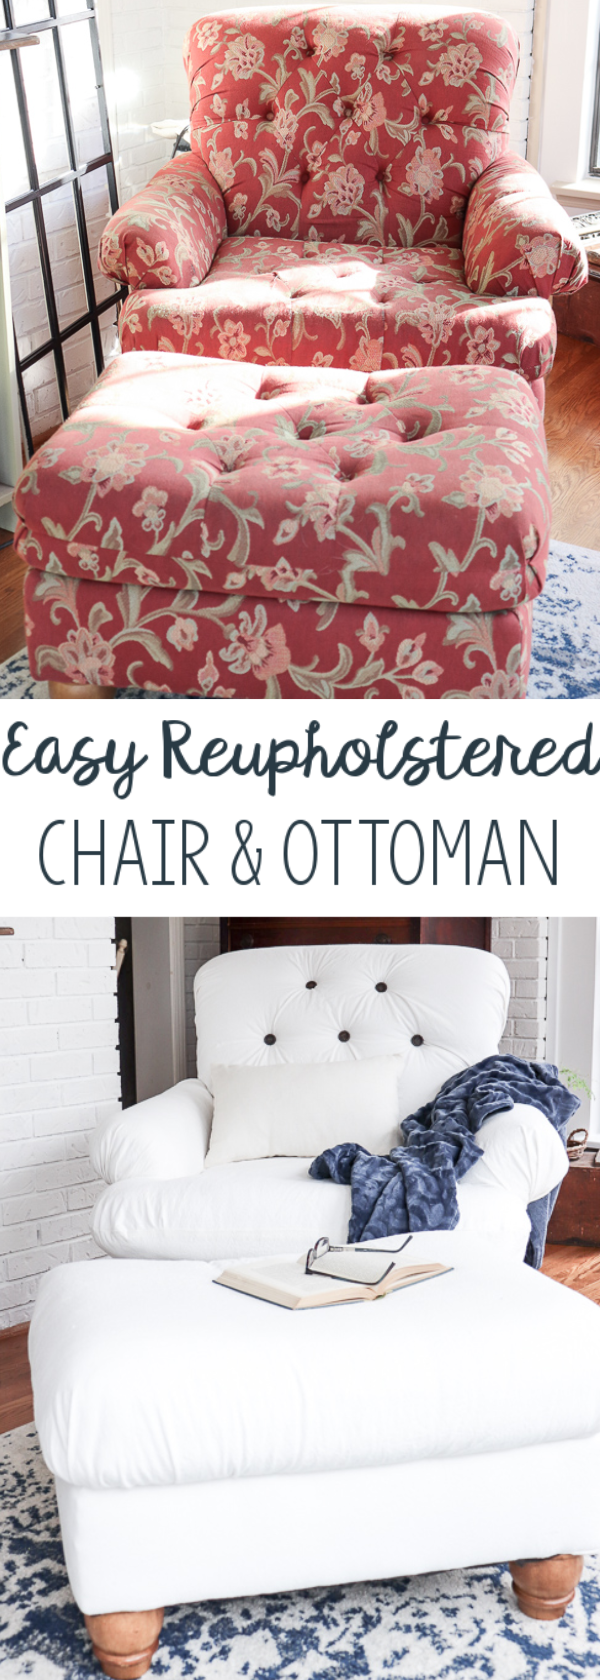 When I found a chair for $35 on a buy/sell/trade site, I knew I could flip the chair into something perfect for my home. Here's an easy DIY reupholstered chair and ottoman that took just a few days to complete.